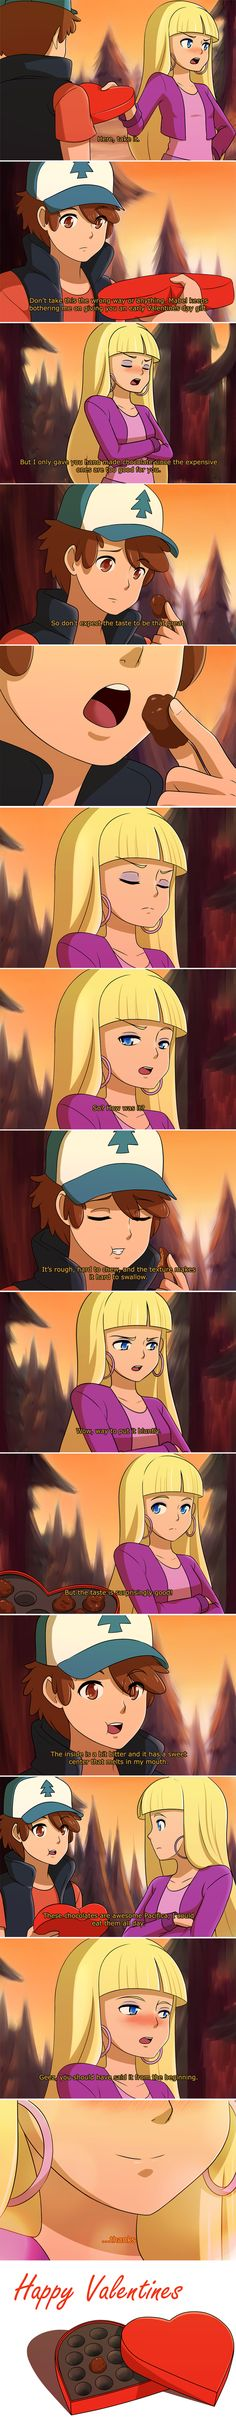 Gravity Falls - Valentines by Mgx0.deviantart.com on @DeviantArt || Dipper and Pacifica... Yes, i ship it ❤(/^▽^)/